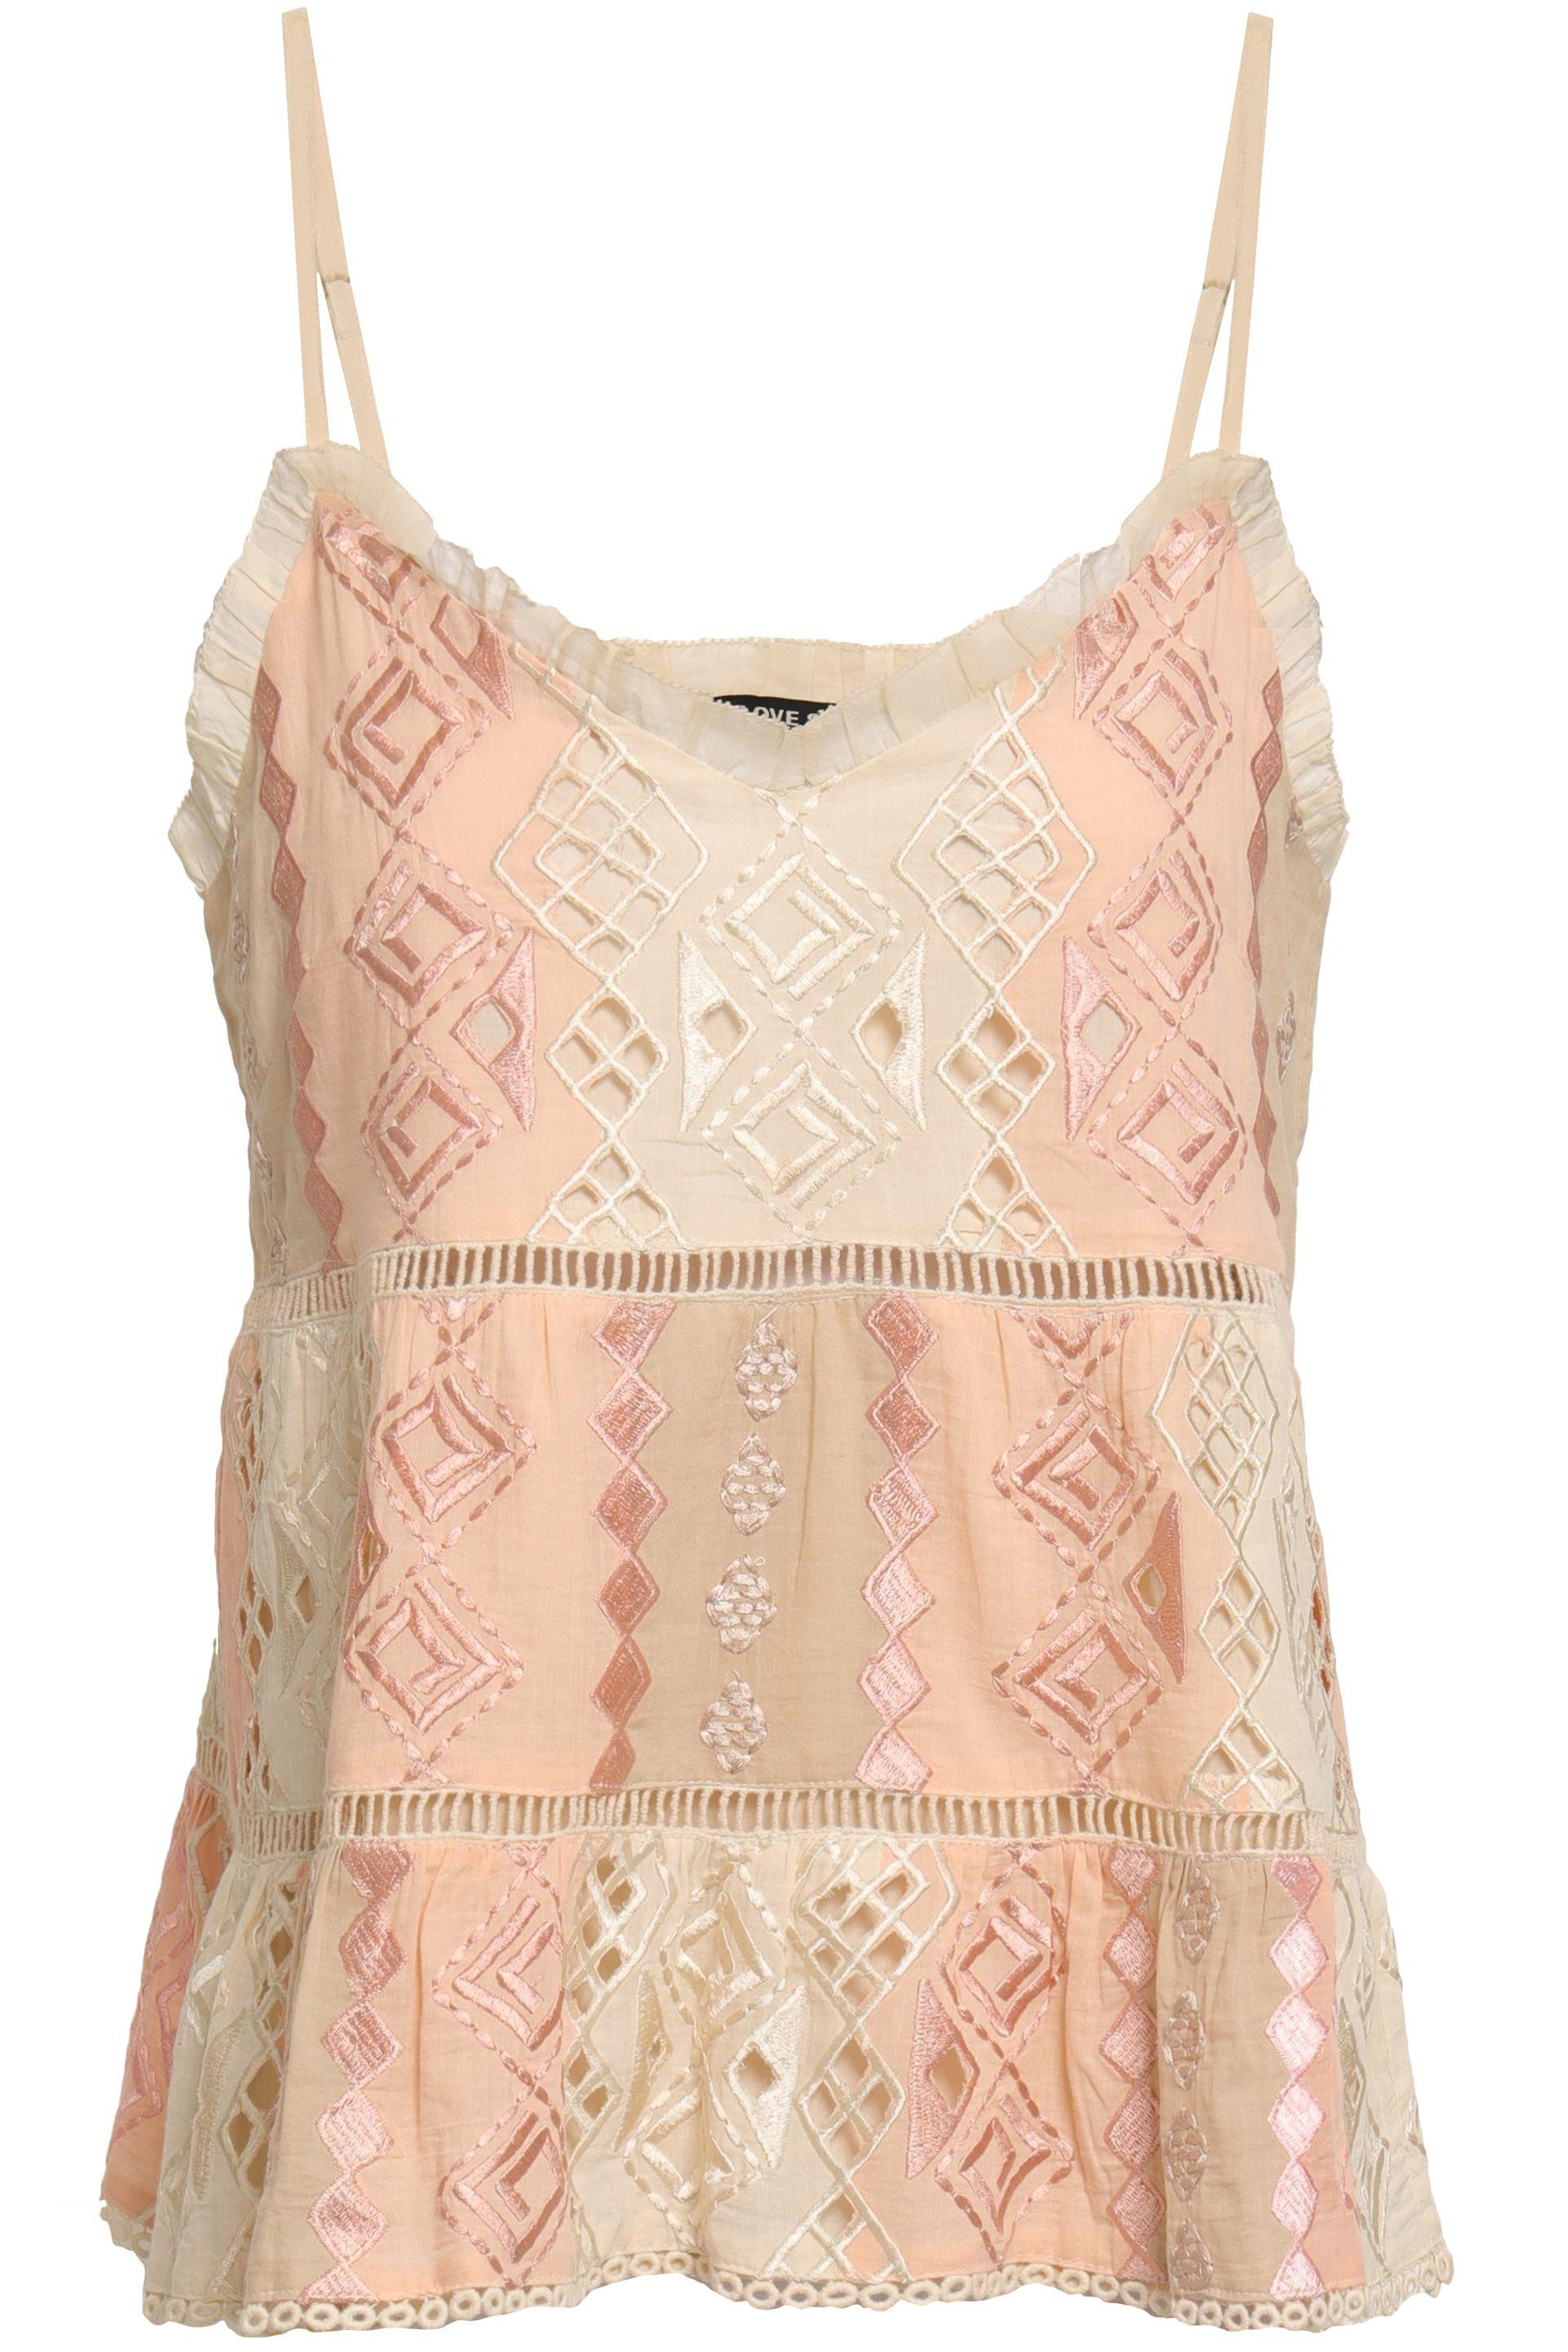 5b56ccd6350 Love Sam Woman Lattice-trimmed Embroidered Cotton-gauze Camisole ...